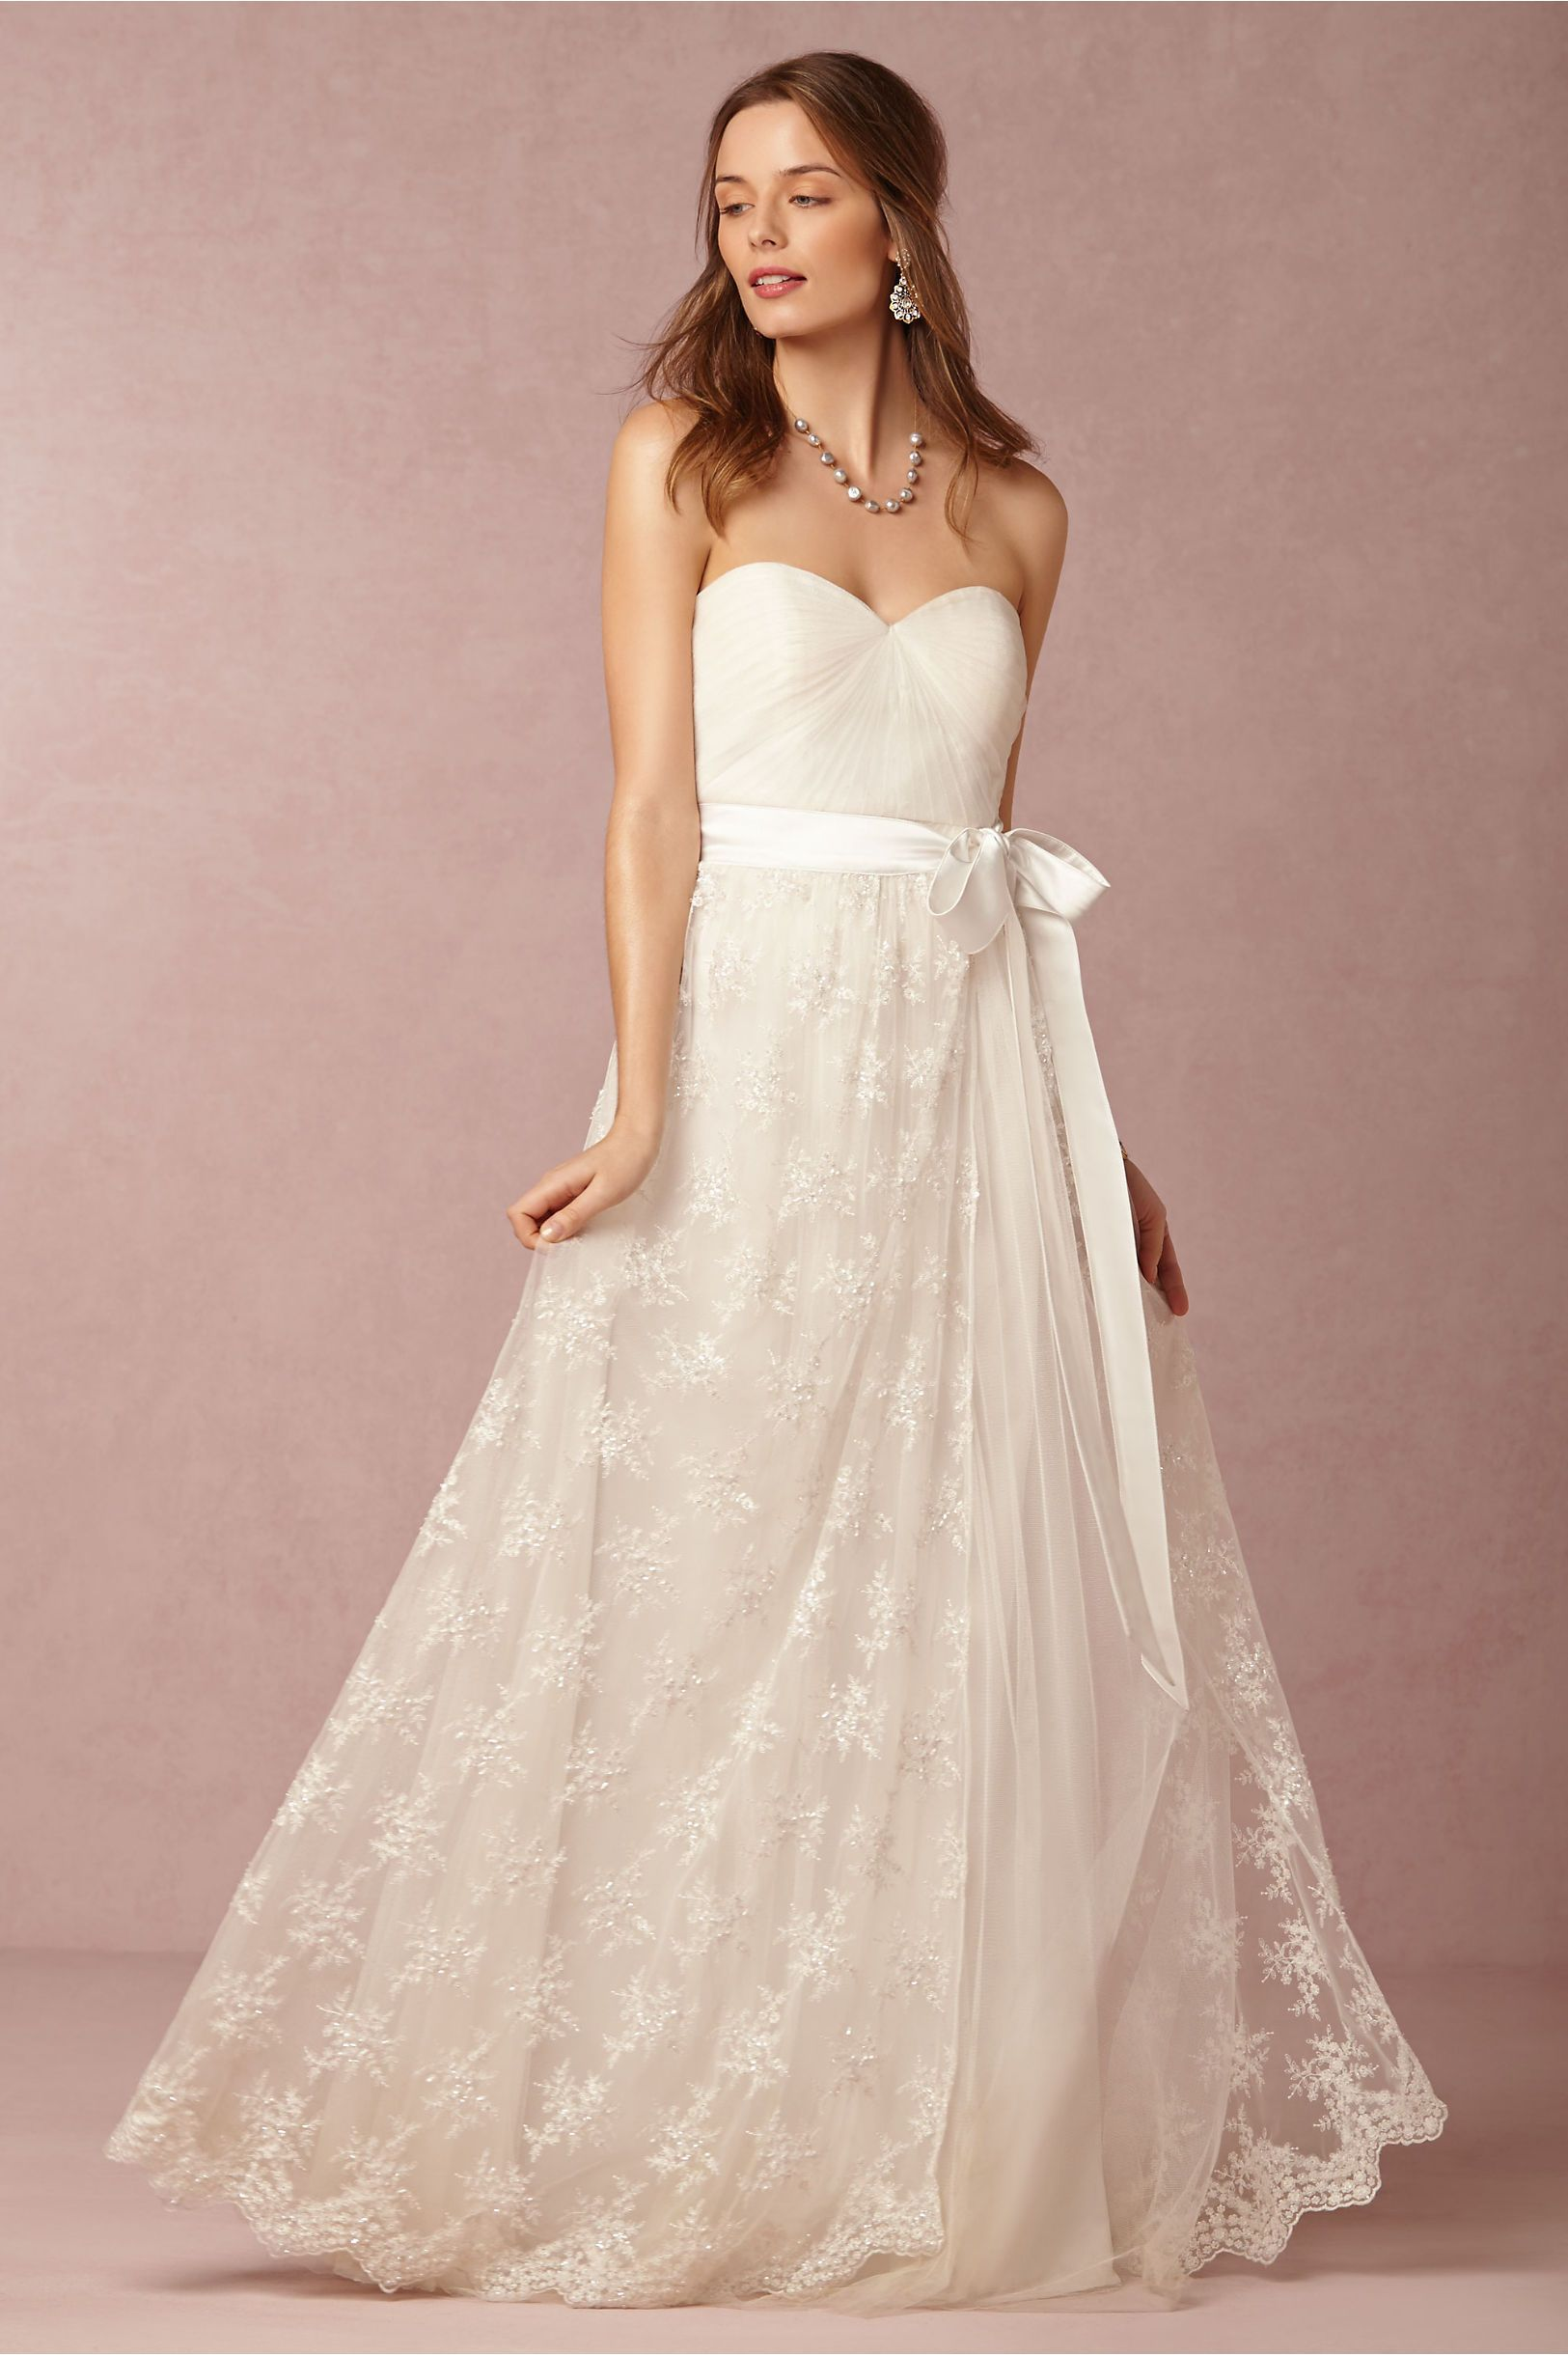 Bridal Separates From Bhldn Julia Skirt And Annabelle Dress